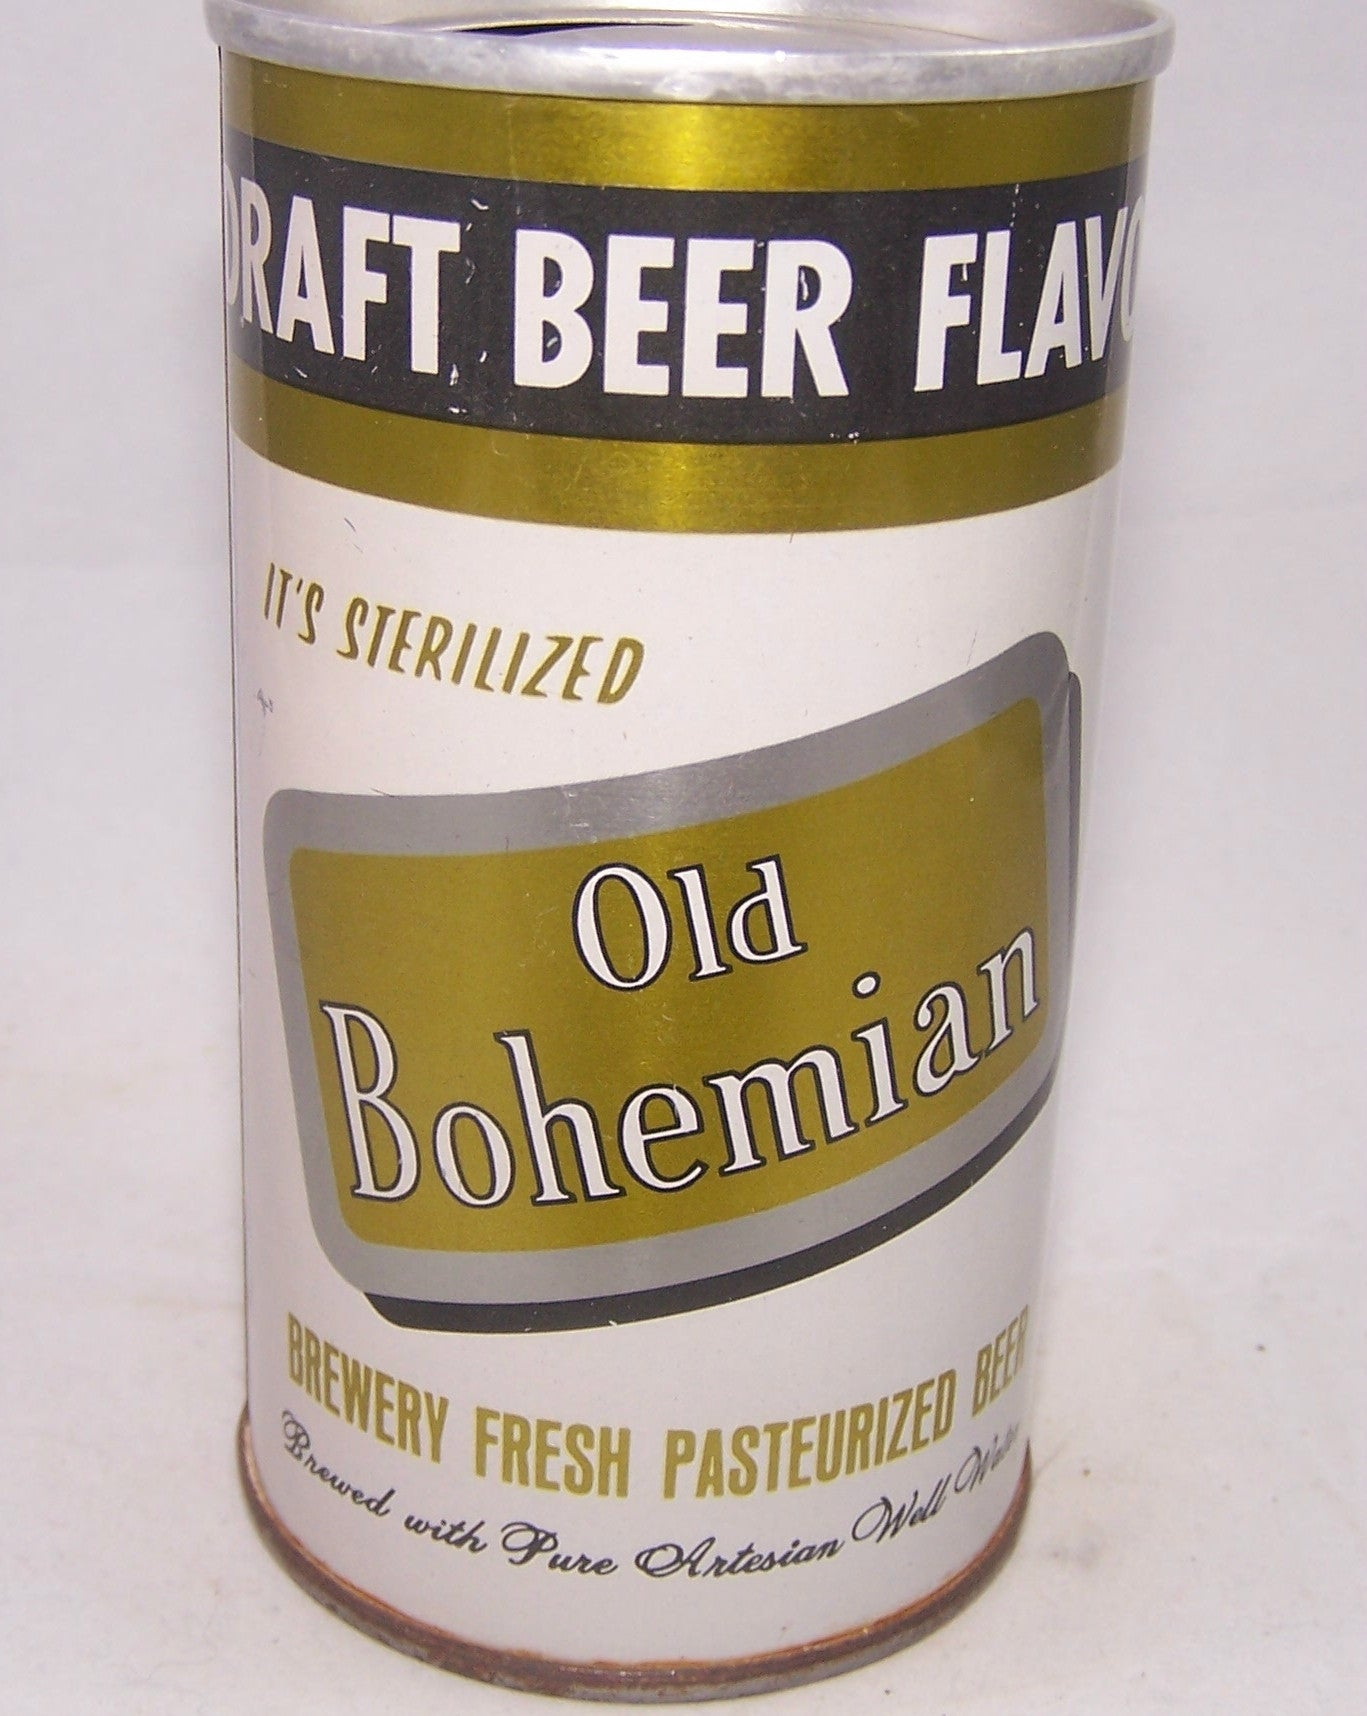 Old Bohemian Draft Flavor Beer, USBC II 99-22, Grade 1 to 1/1+ Sold on 08/29/18